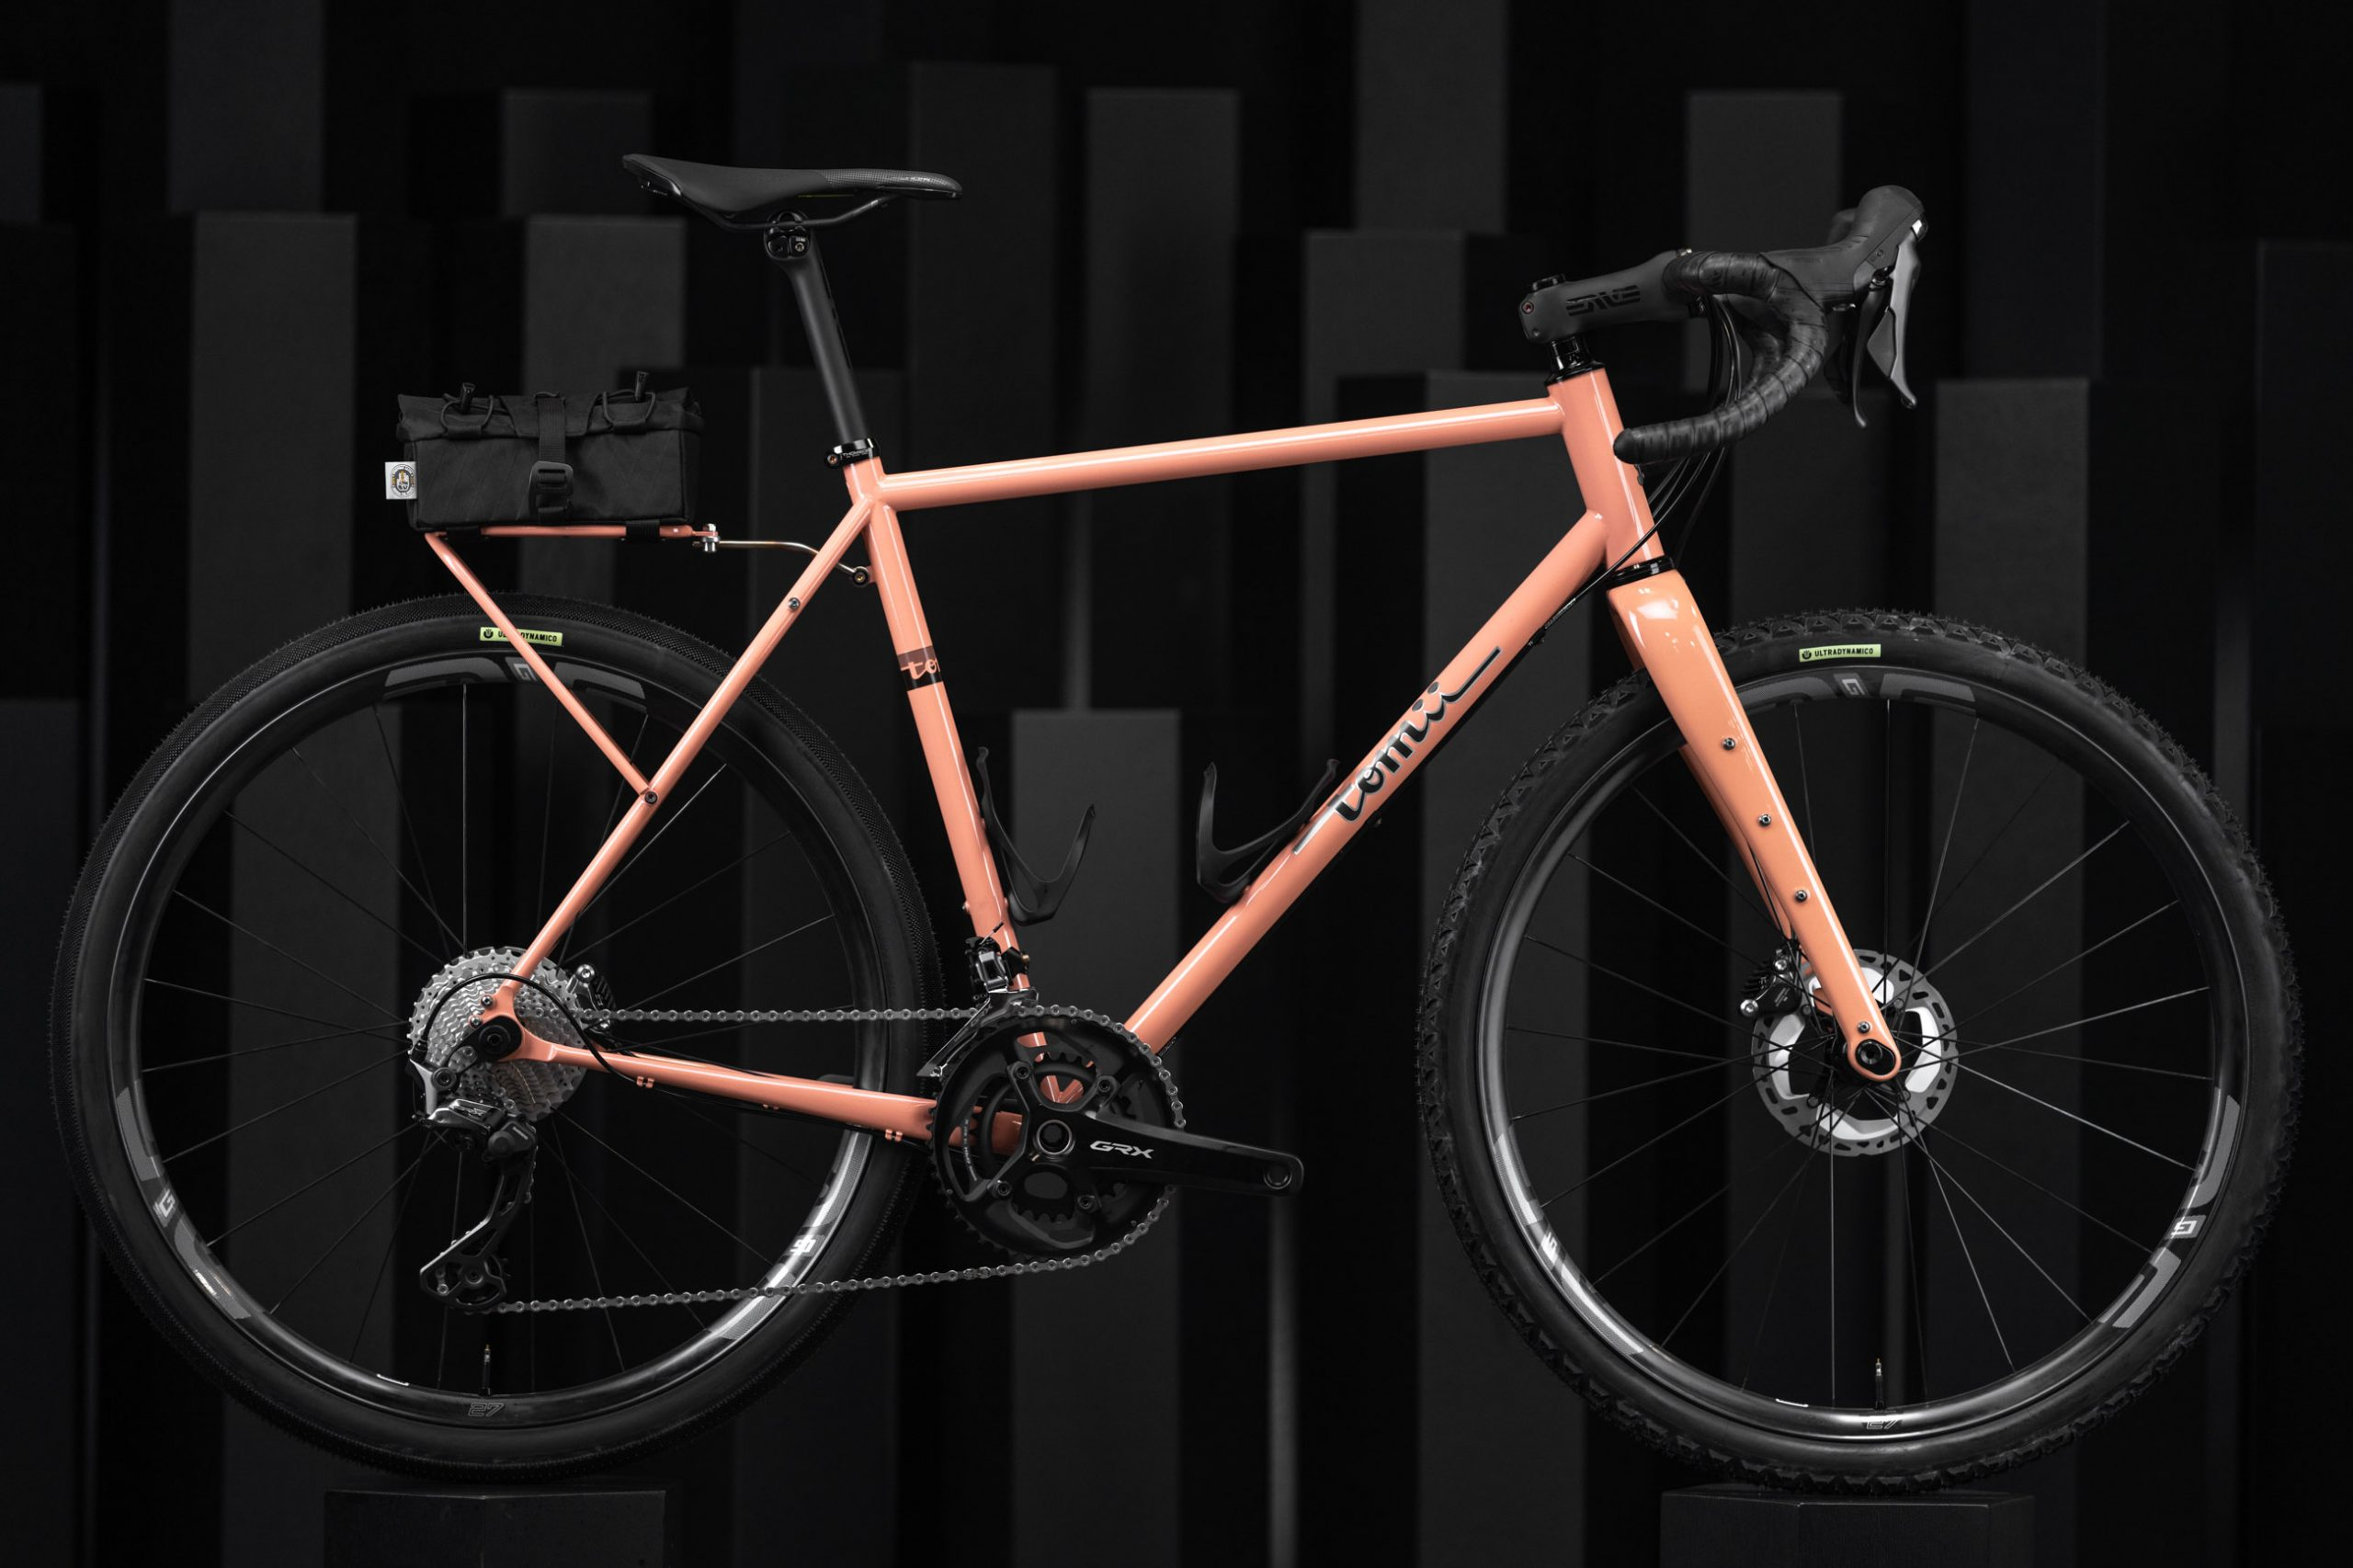 Tomii Cycles